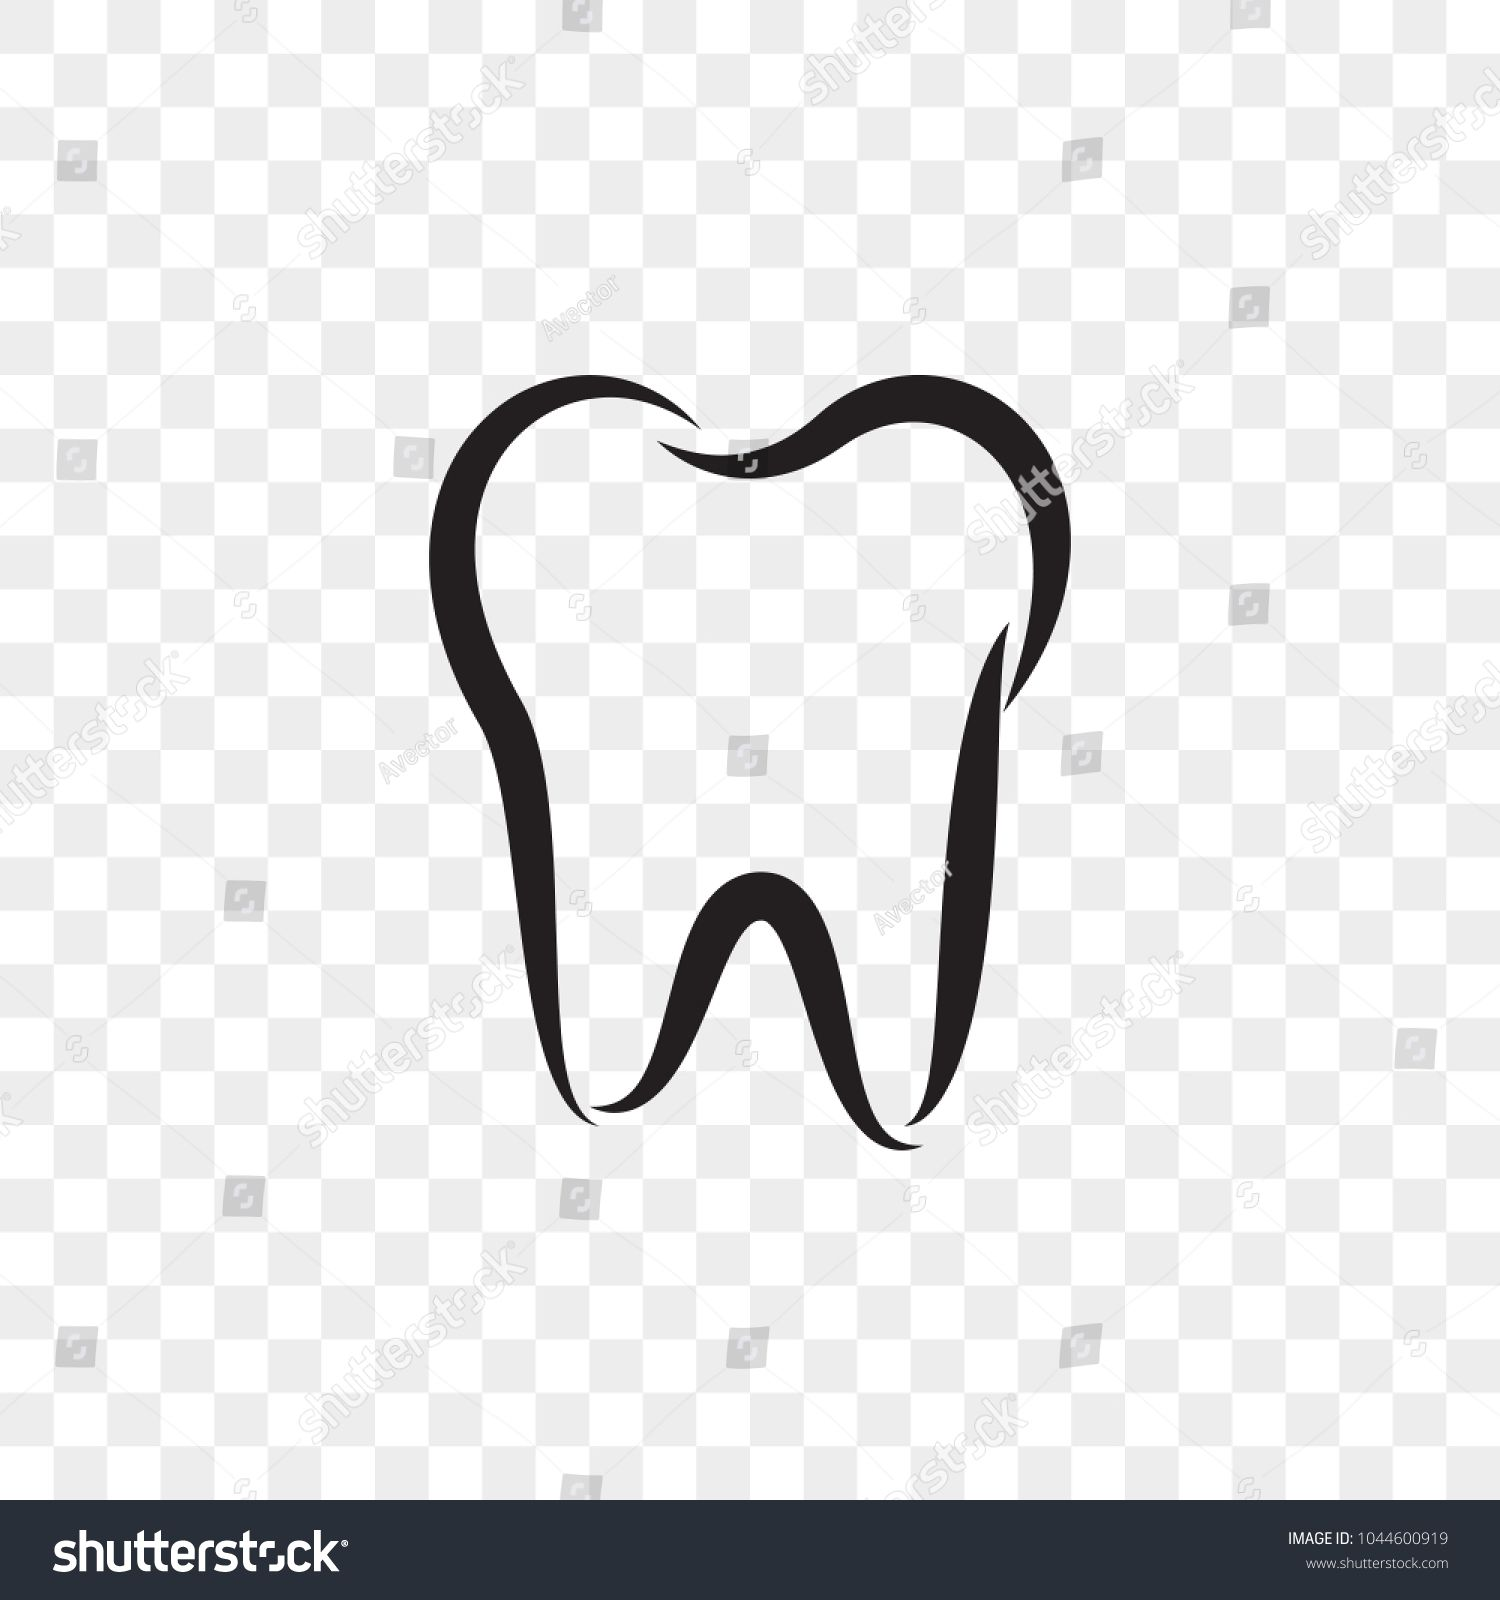 Tooth Logo Icon For Dentist Or Stomatology Dental Care Design Template Vector Isolated Black Outline Line Tooth Symbol Teeth Logo Tooth Outline Tooth Template